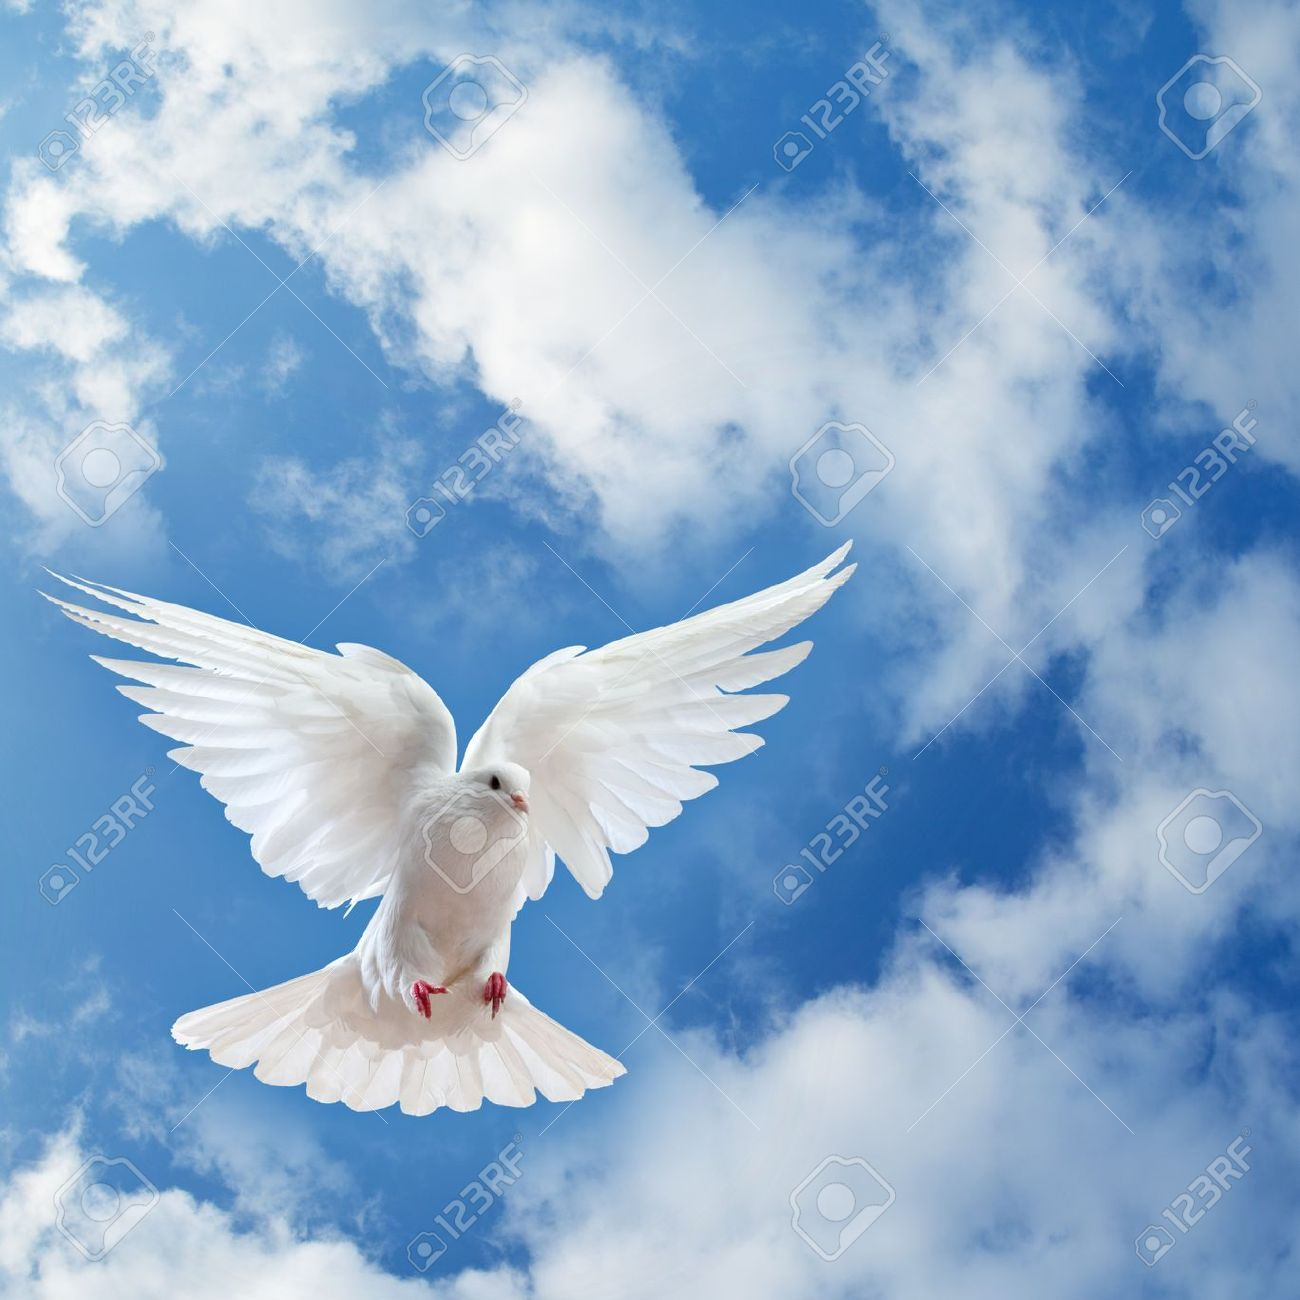 Dove In The Air With Wings Wide Open In Front Of